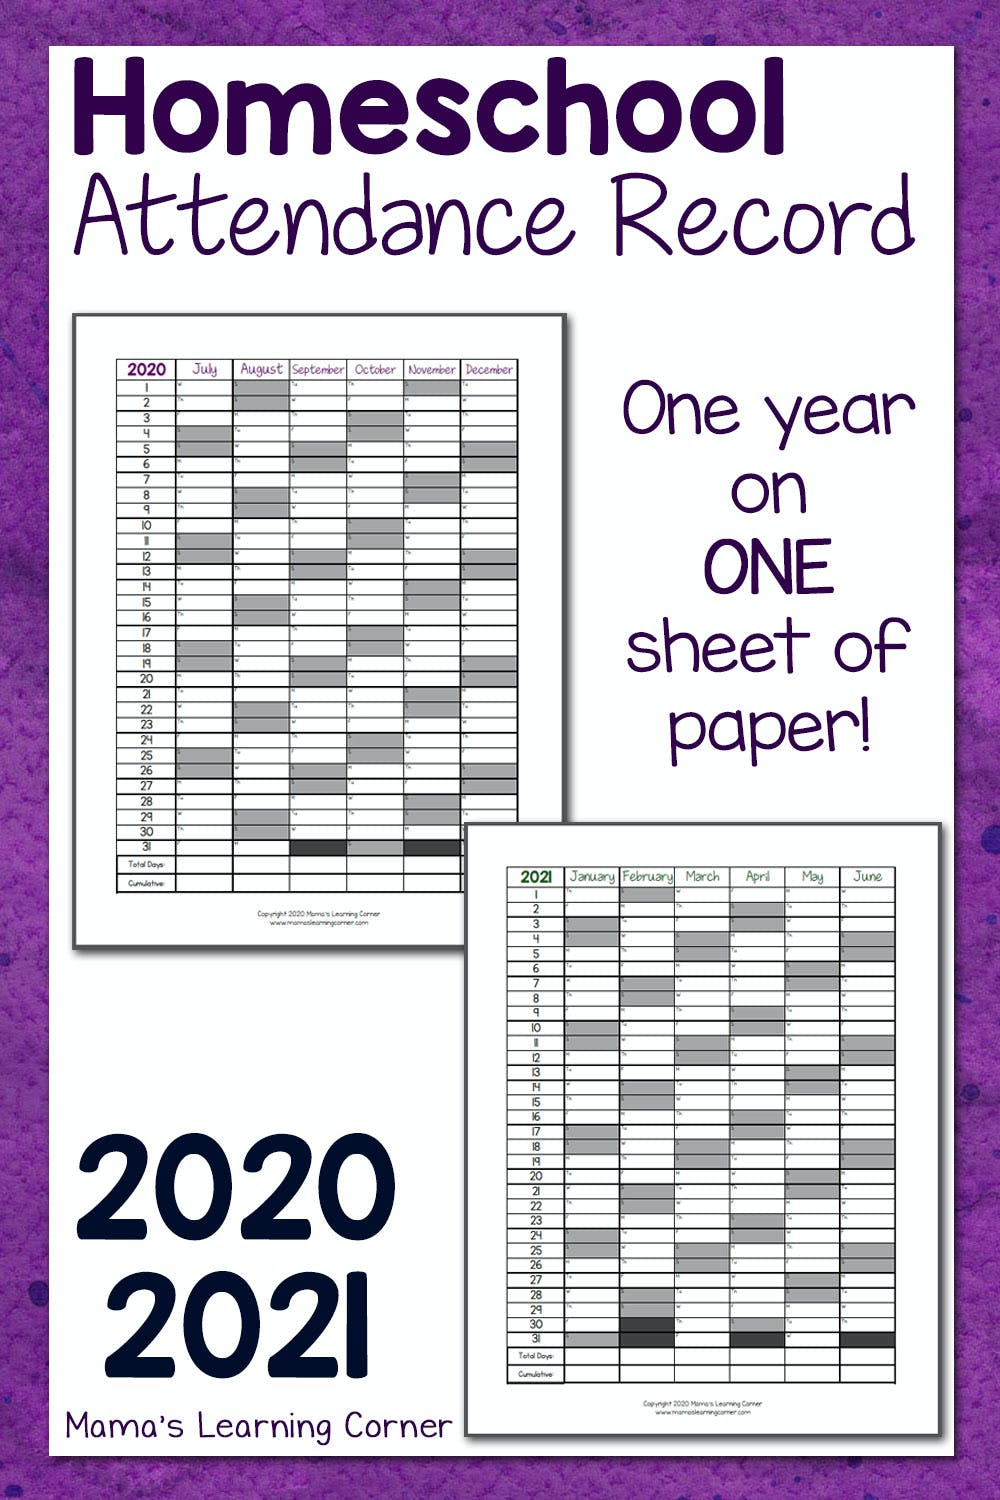 hight resolution of Homeschool Attendance Record 2020-2021 - Mamas Learning Corner